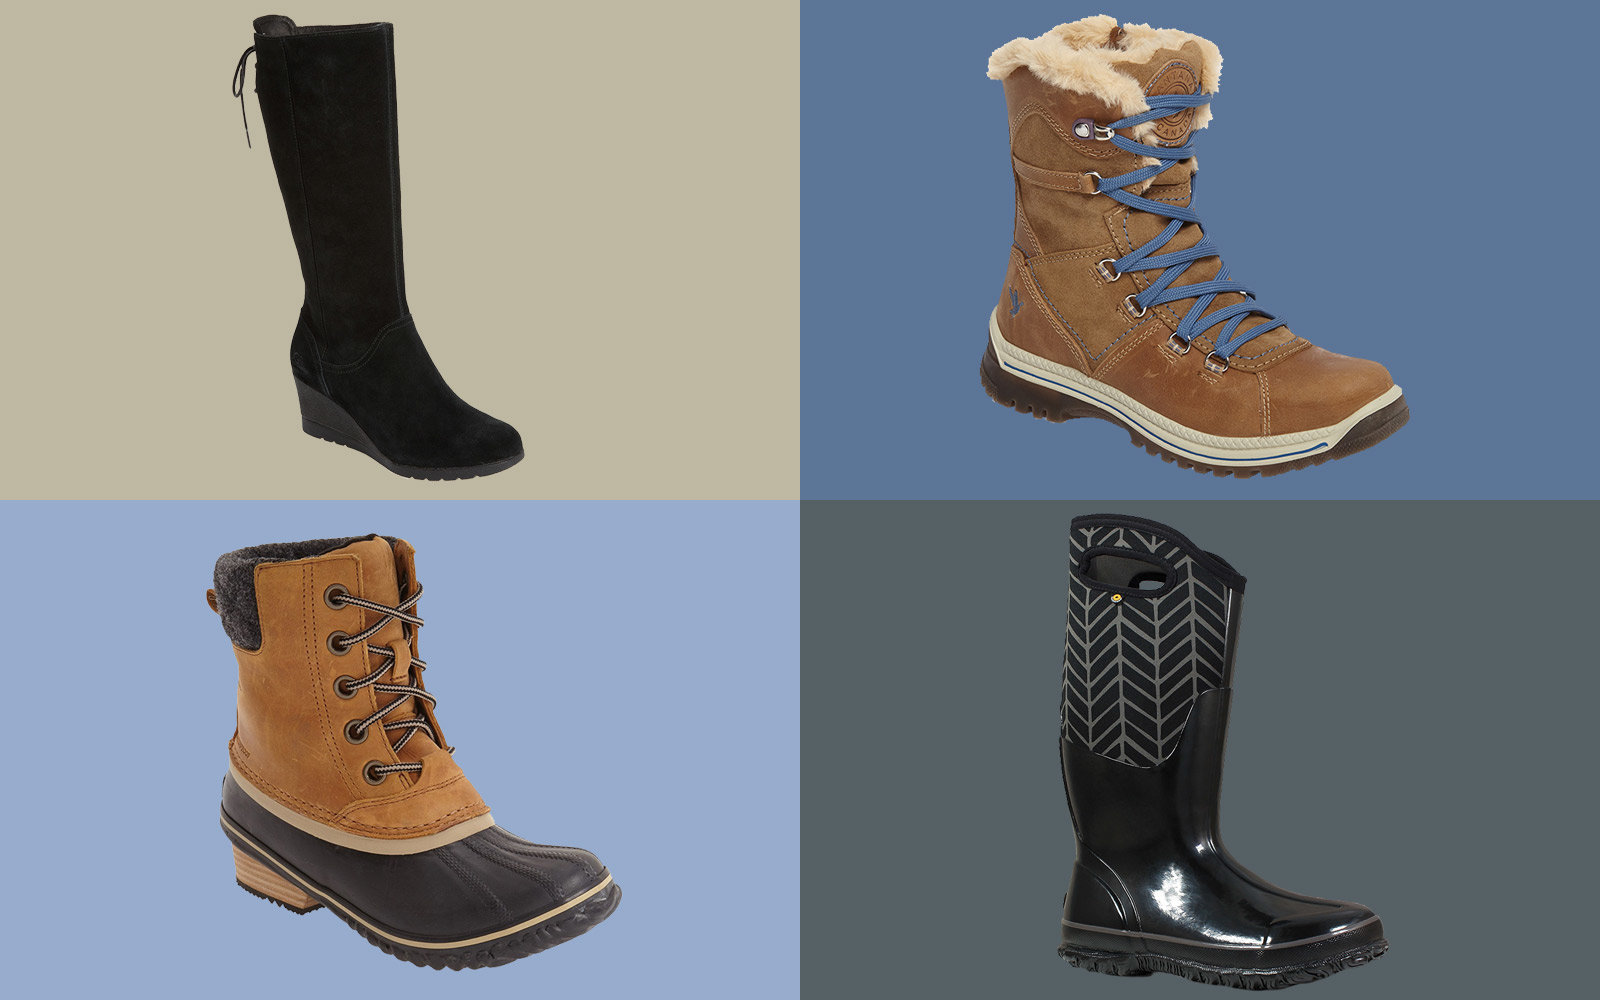 7 Pairs of Snow Boots From Nordstrom That Have Near-perfect Ratings